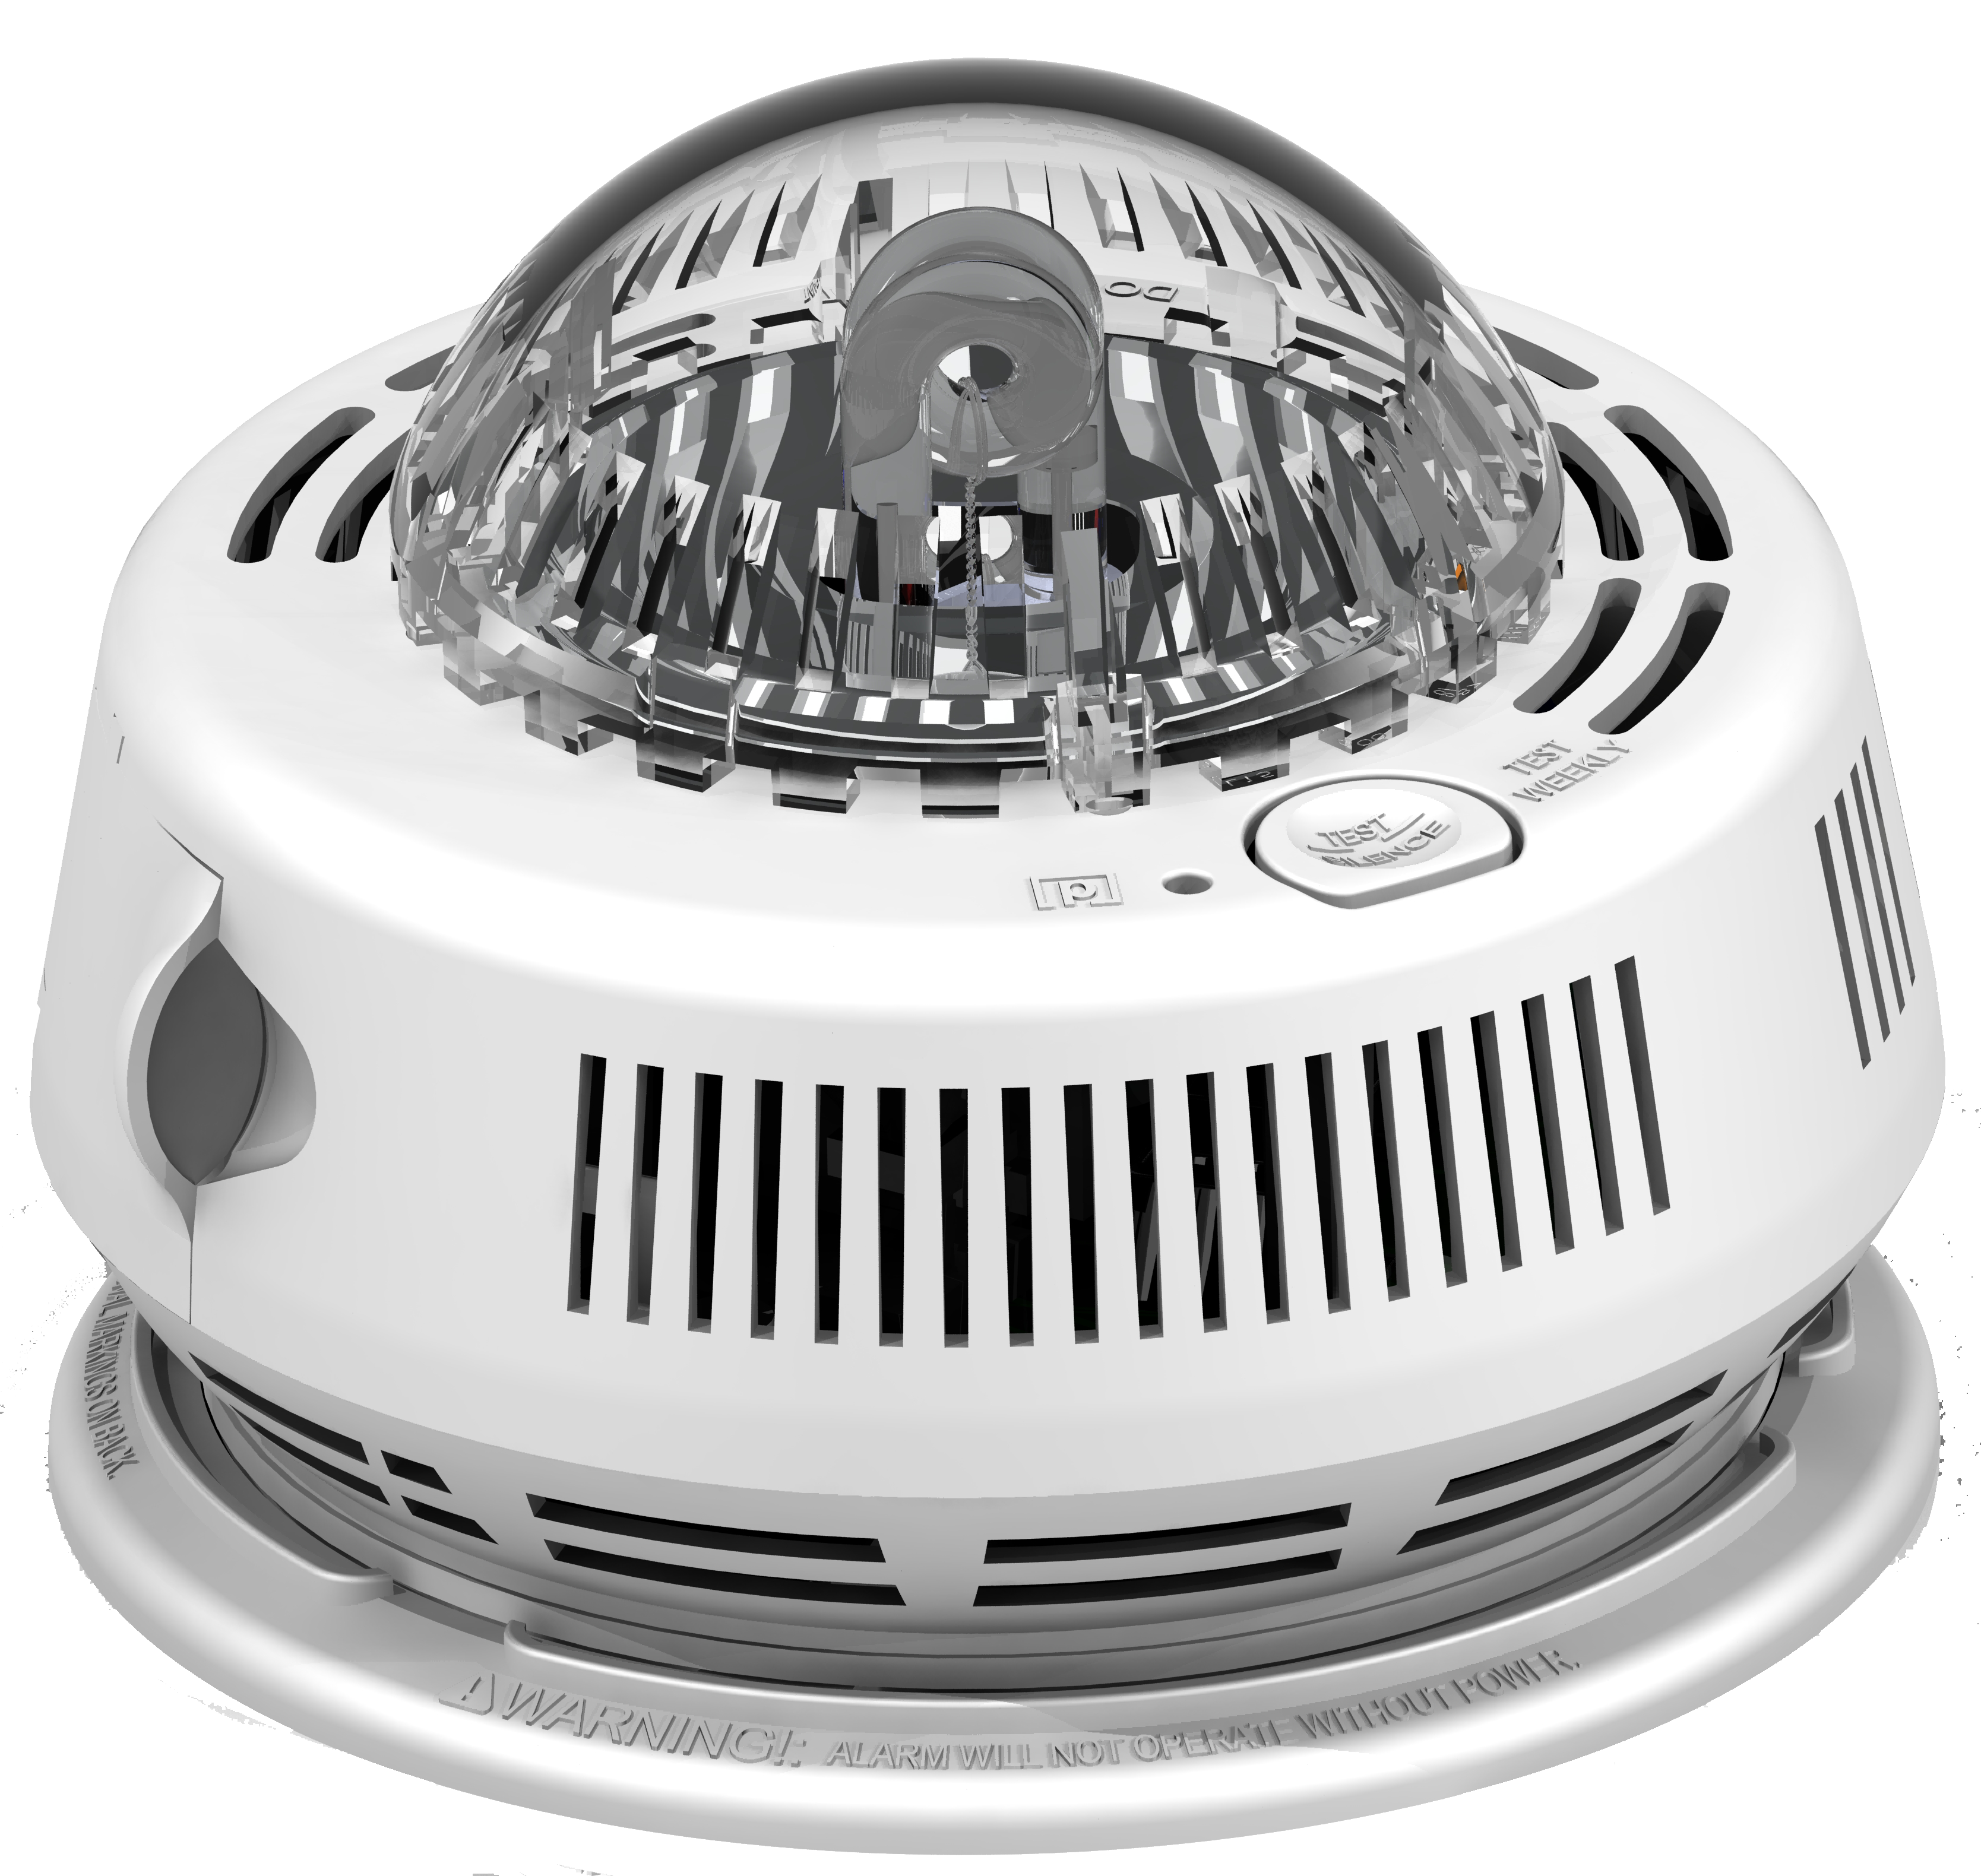 120V AC/DC Photo Smoke Alarm with Integrated Strobe